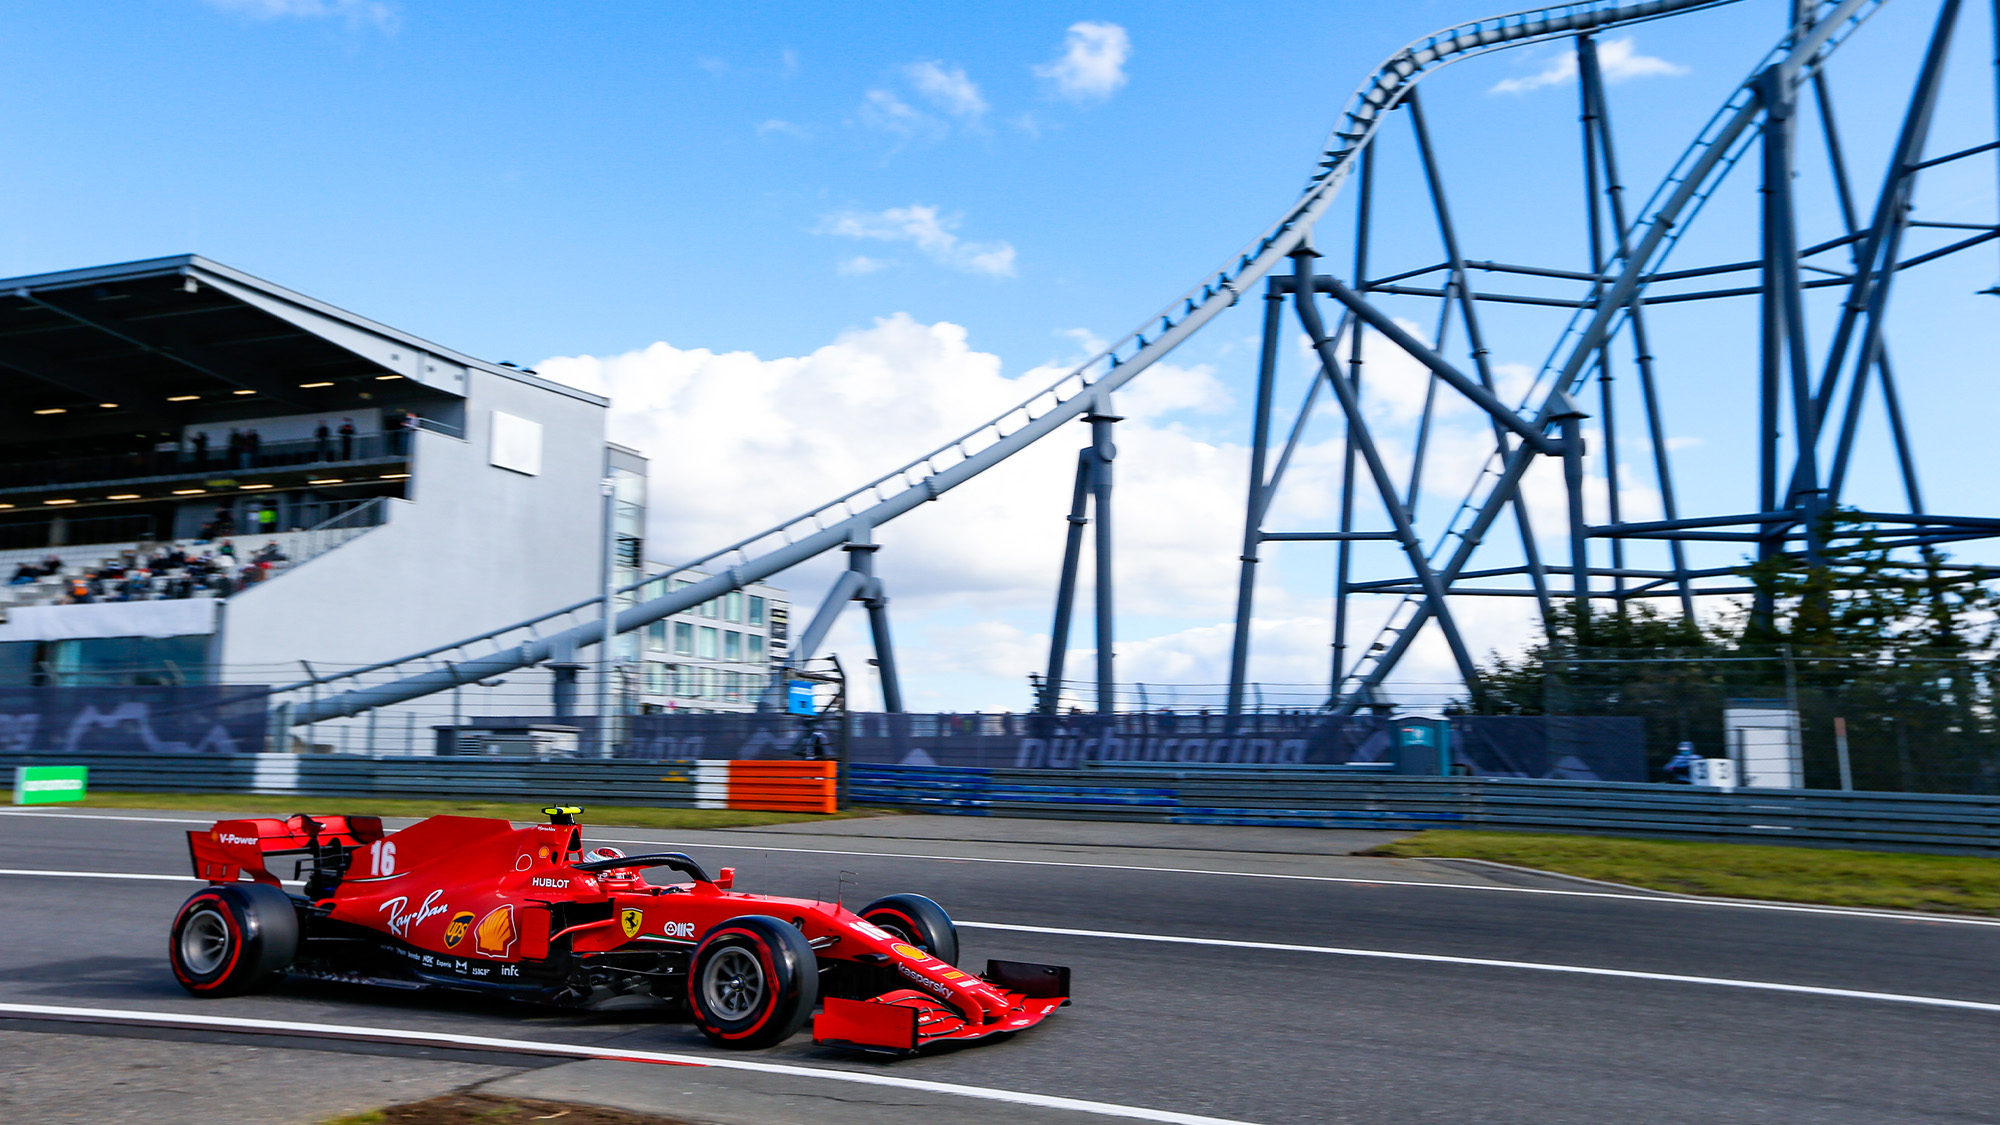 Charles Leclerc during qualifying at the Nurbuirgring for the 2020 F1 Eifel Grand Prix